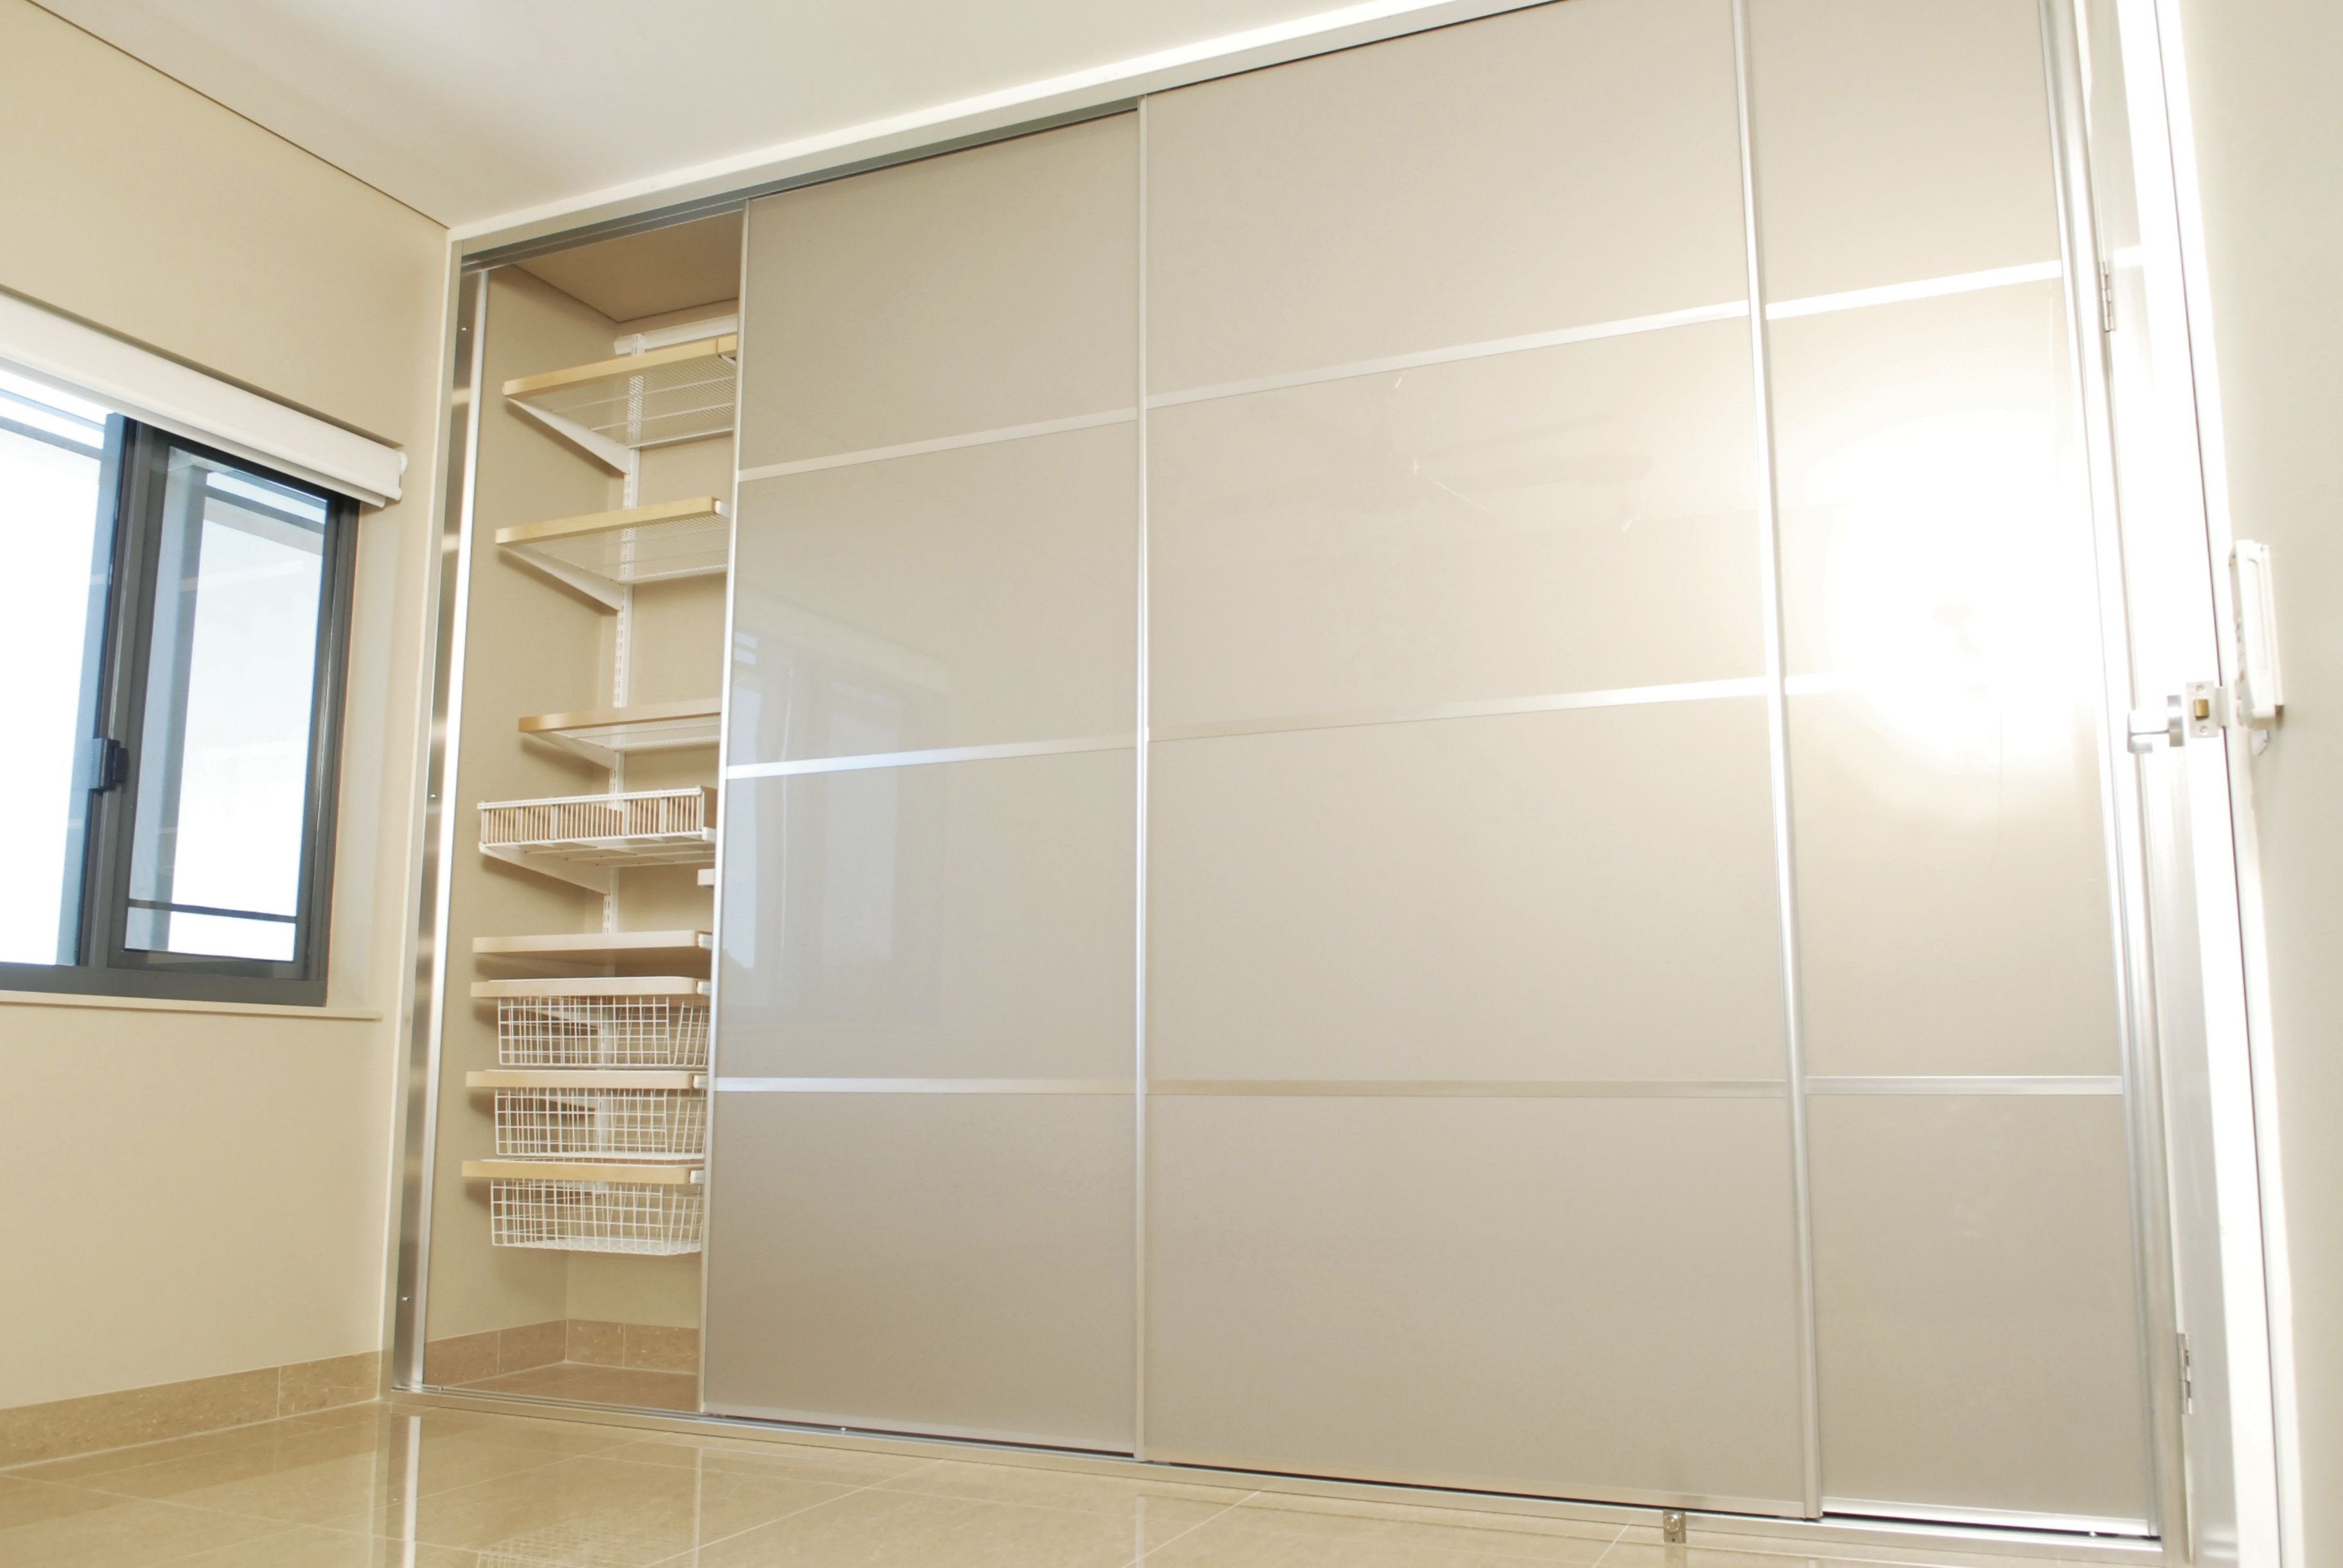 Sliding Doors for Bedroom New Sliding Wardrobe Doors the Panel is Stylite Champagne